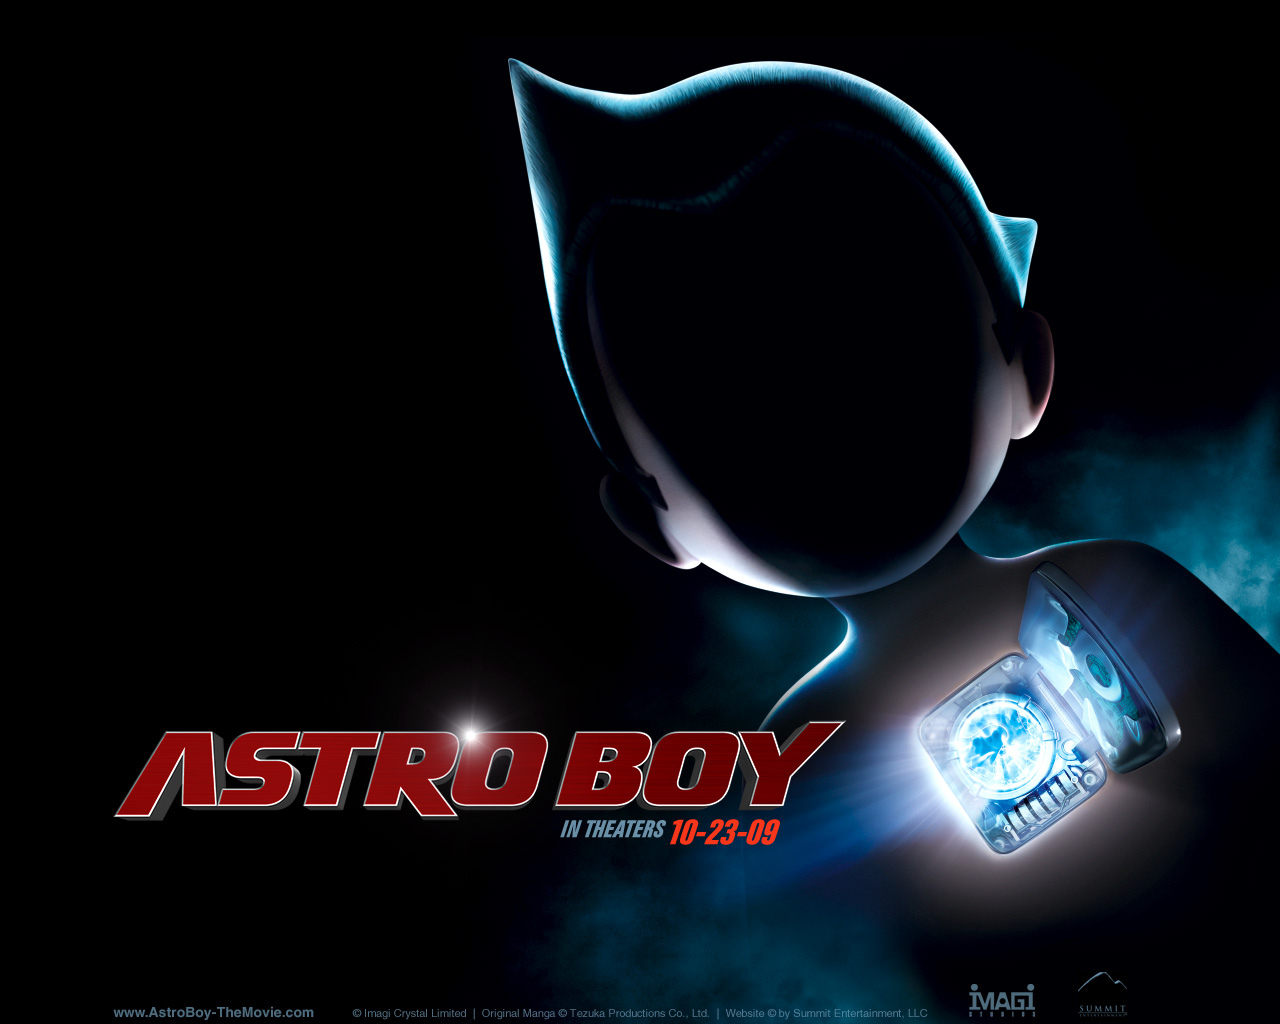 Red Anime Wallpaper Resenha De Filmes Astro Boy